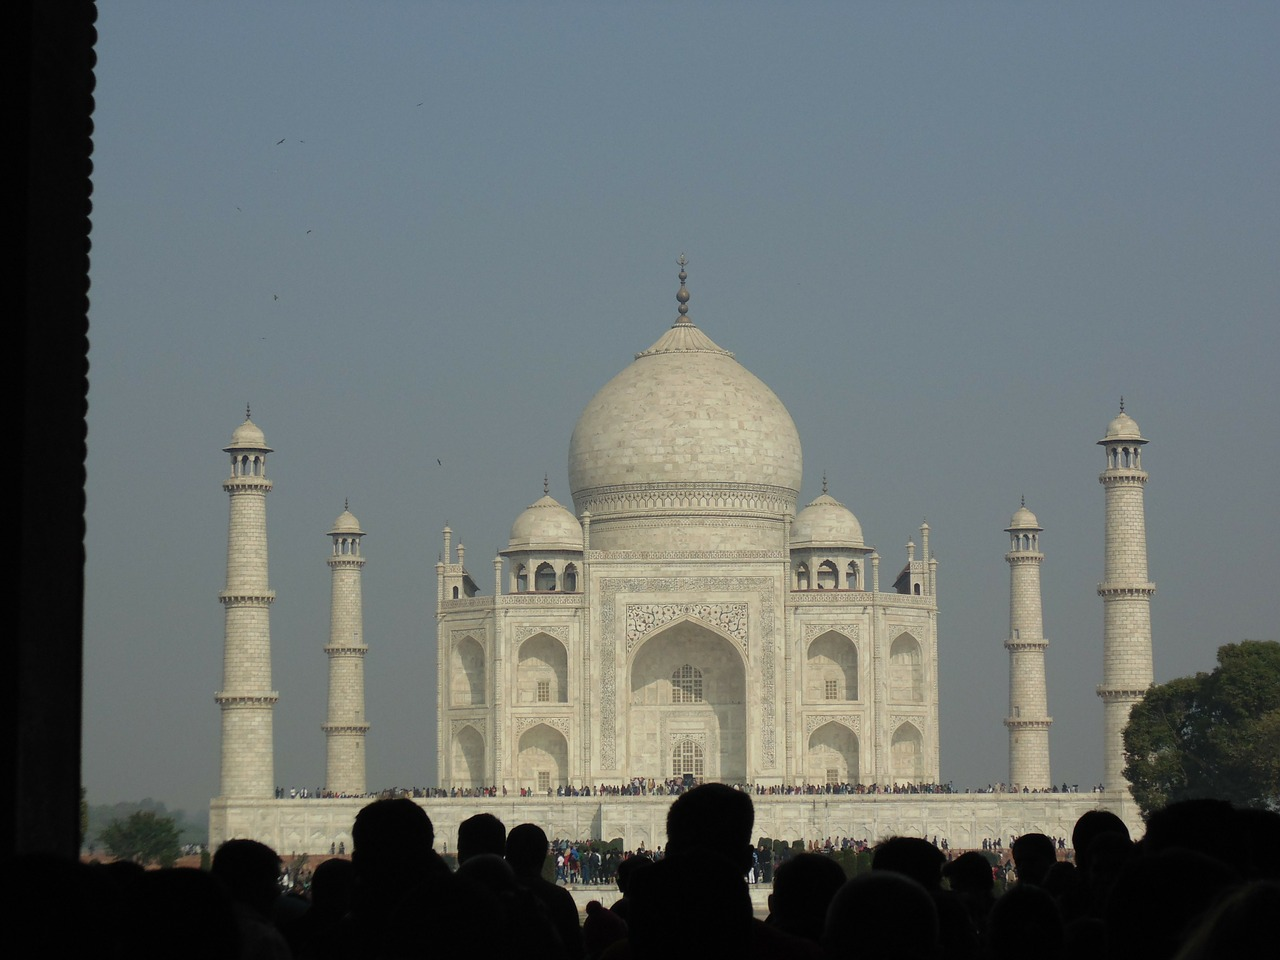 taj mahal marble monument free photo